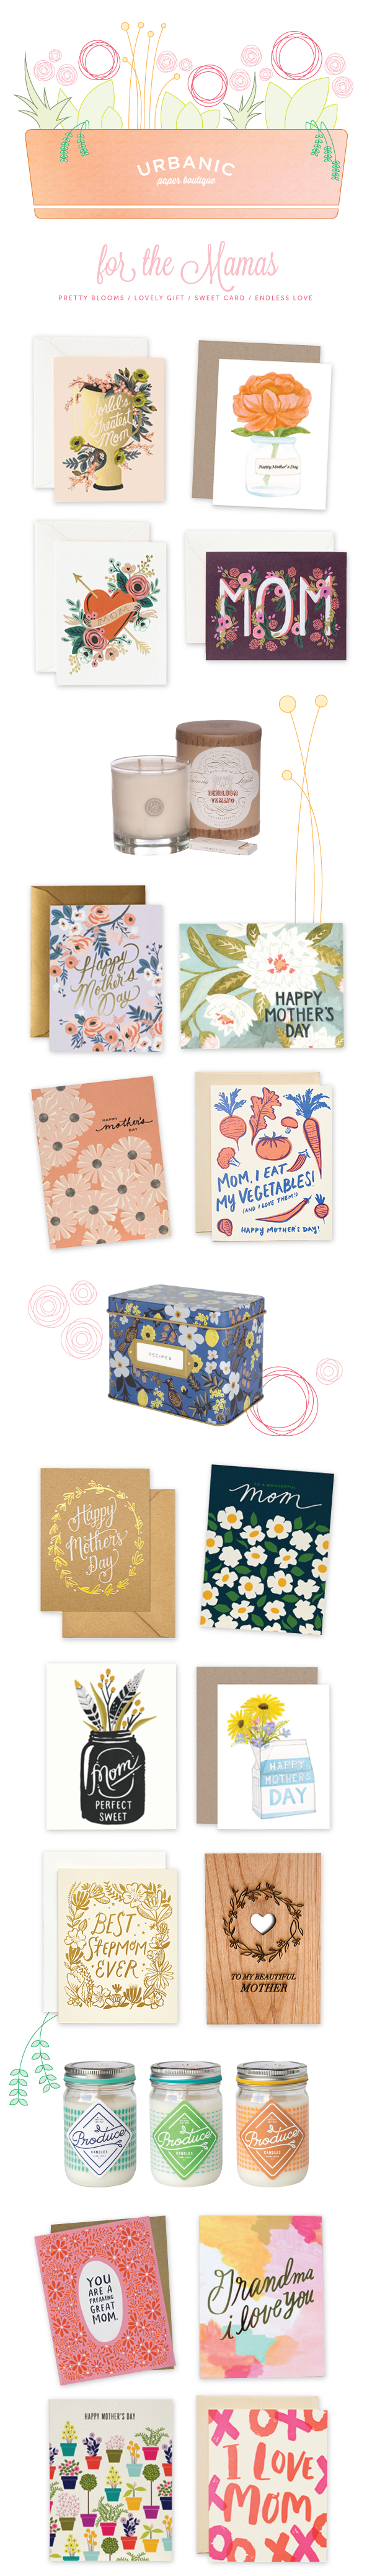 urbanic_paperboutique_mothers_mom_mama_day_cards_gifts